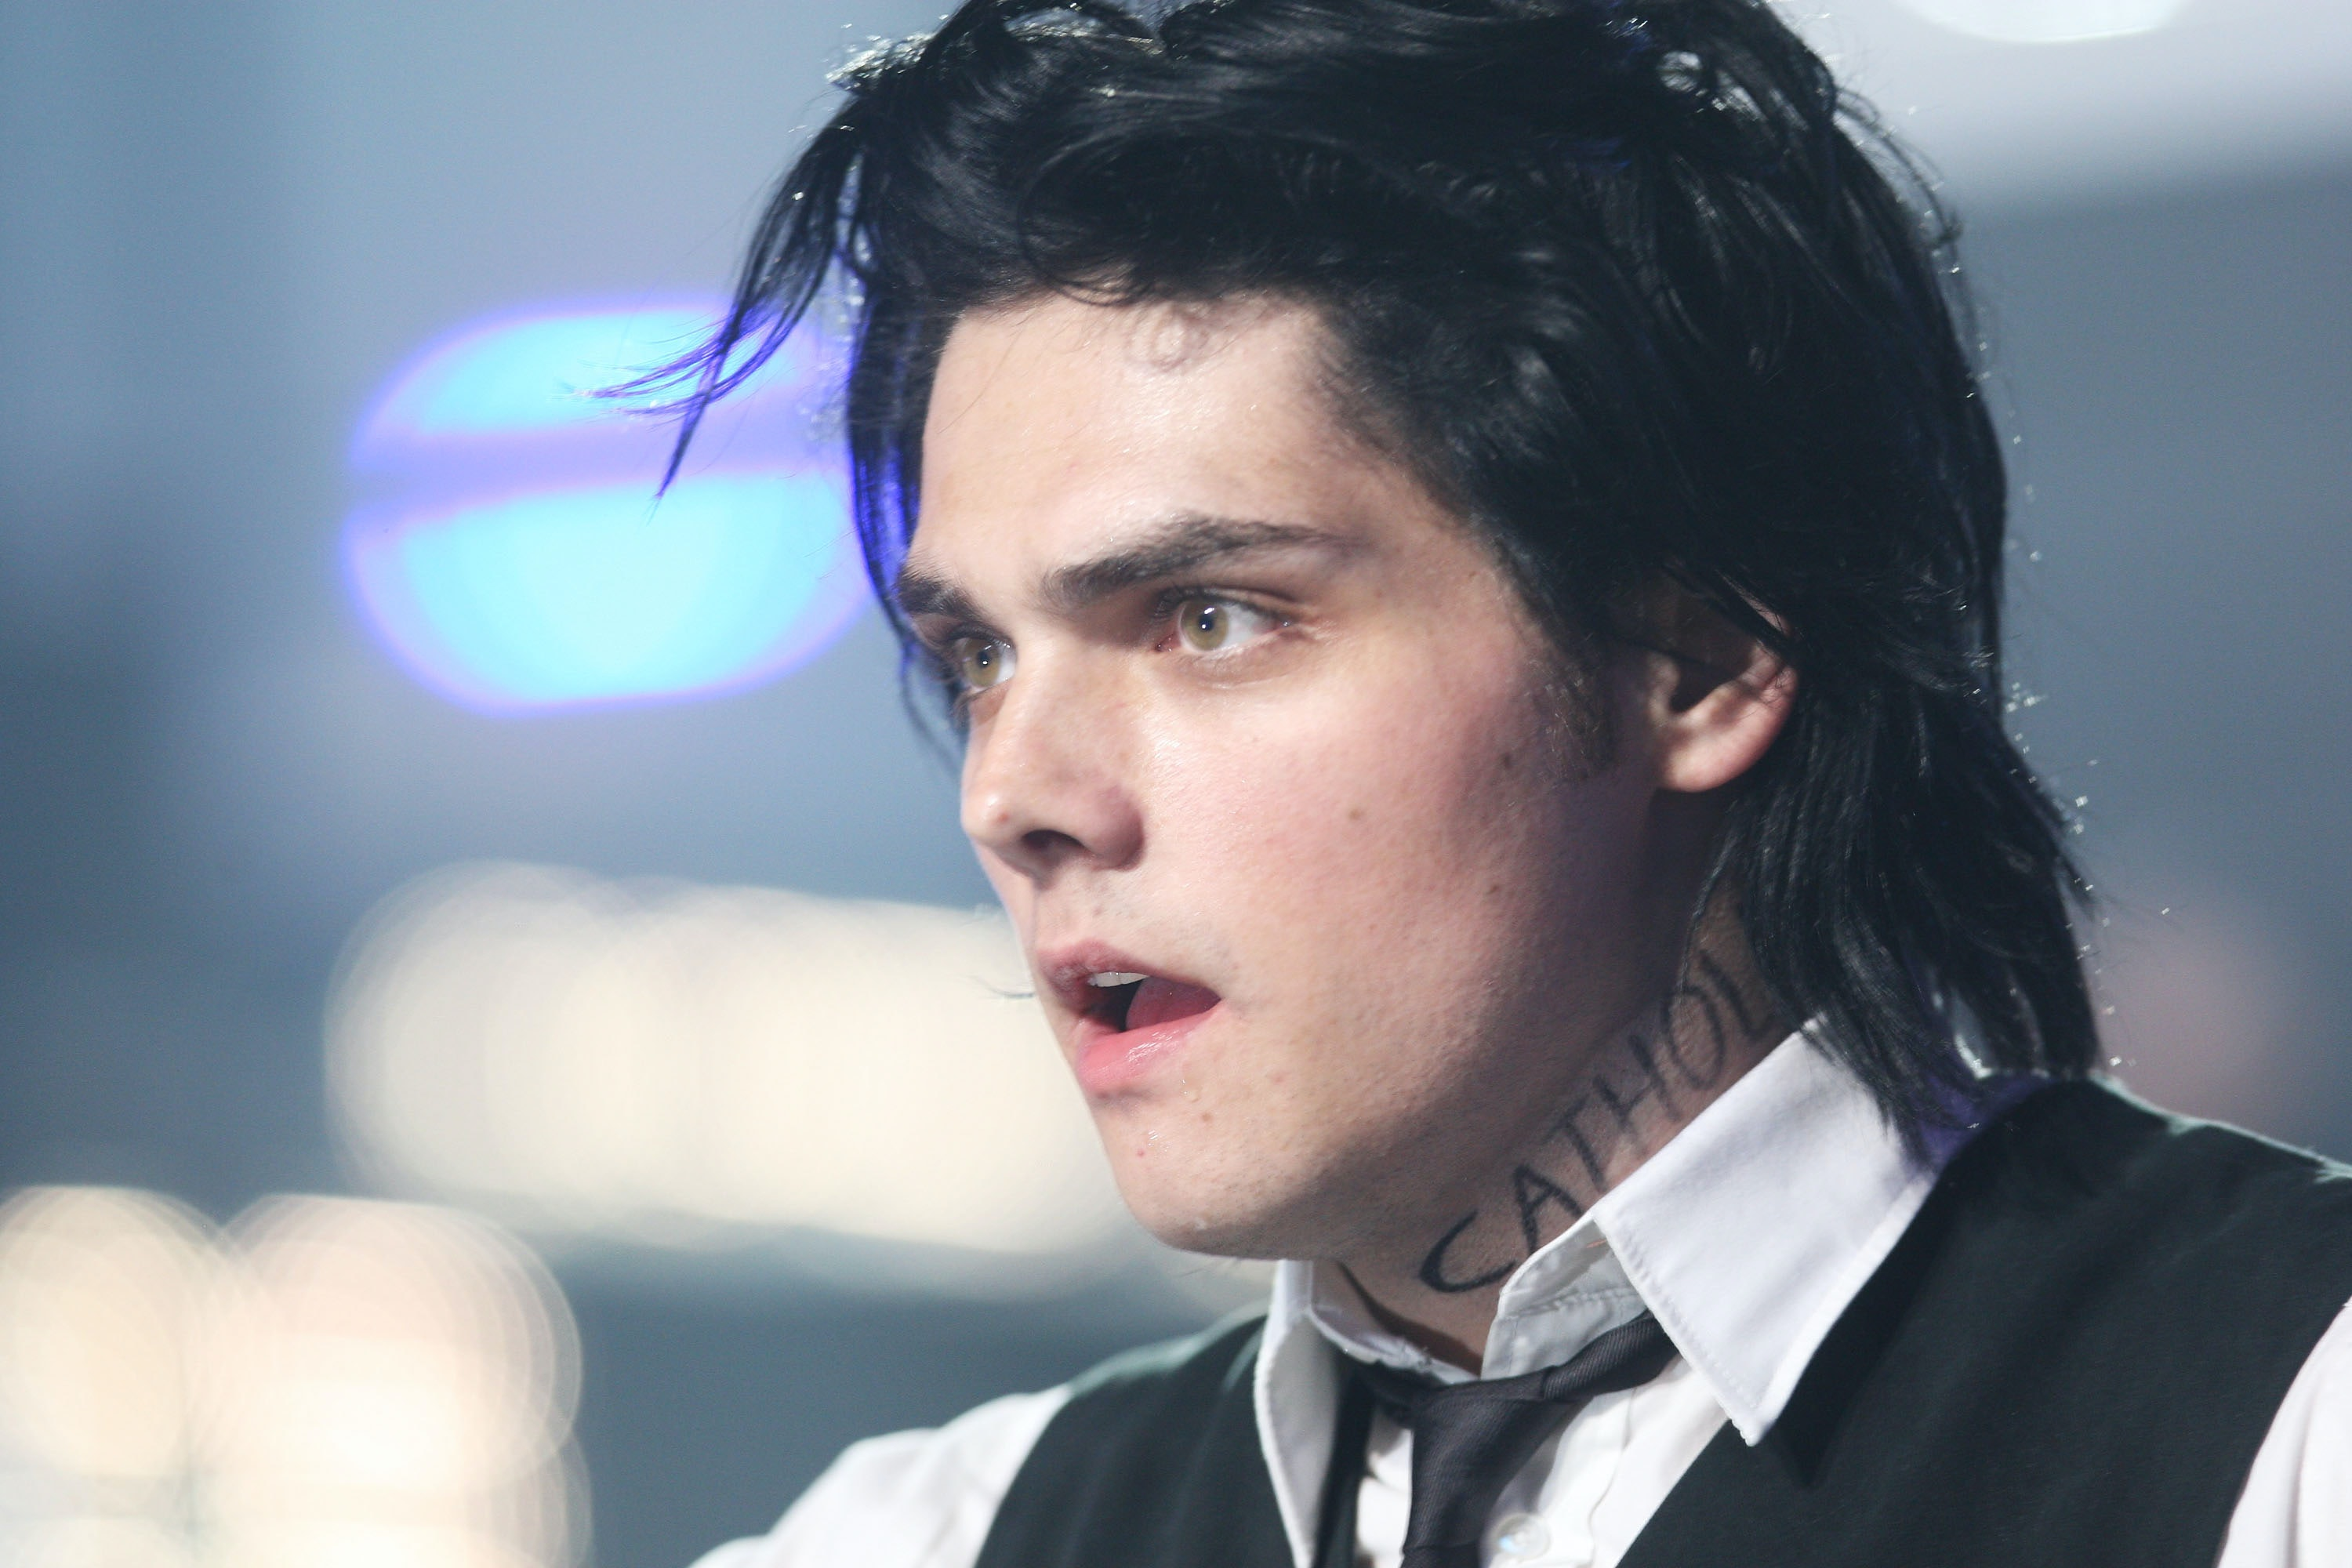 My Chemical Romance S Gerard Way Through The Eras Of Emo And The Fashions That Followed